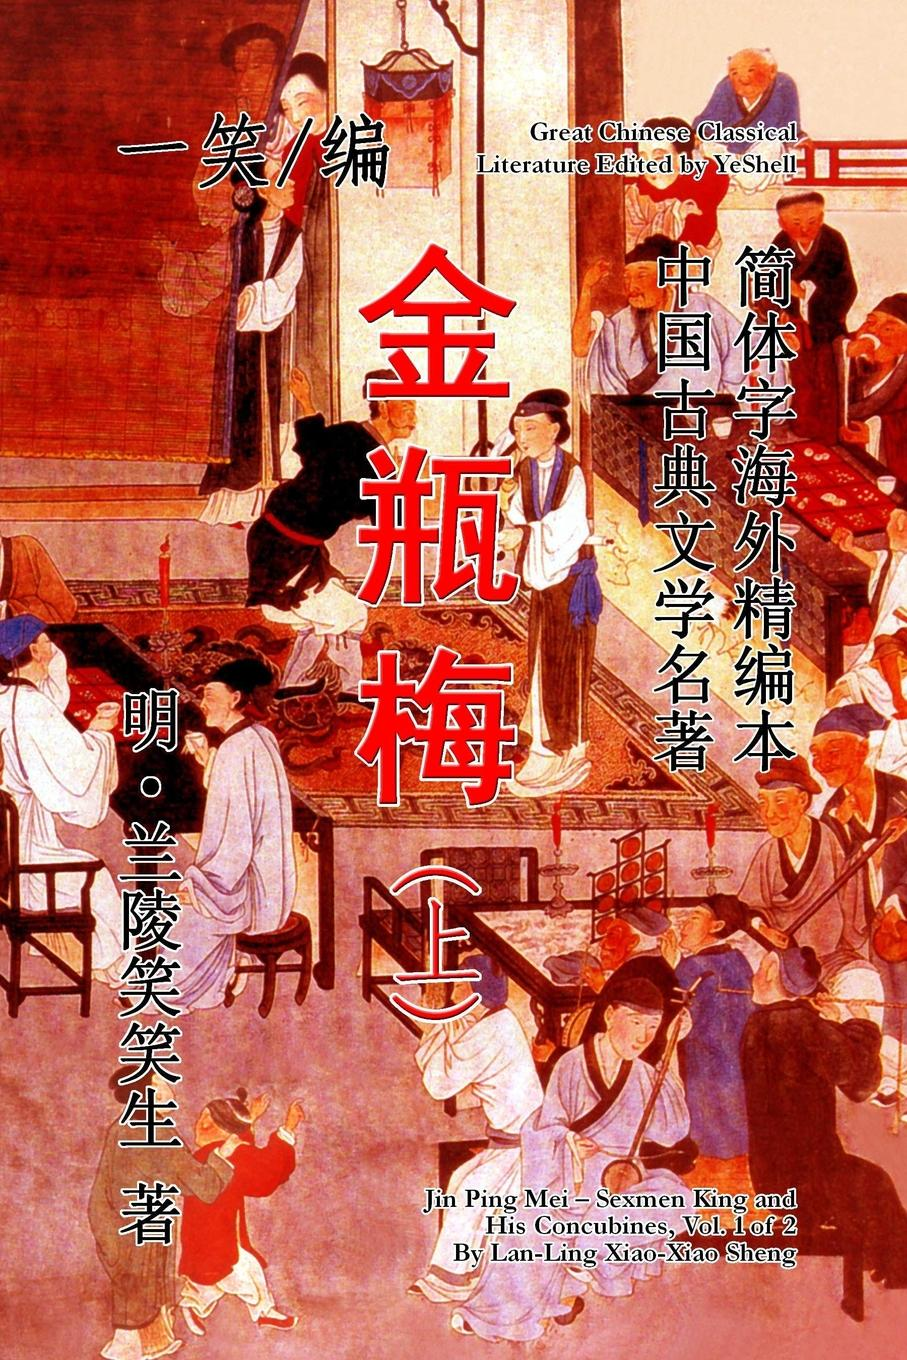 YeShell Sexmen King and His Concubines (Jin Ping Mei), Vol. 1 of 2 цена